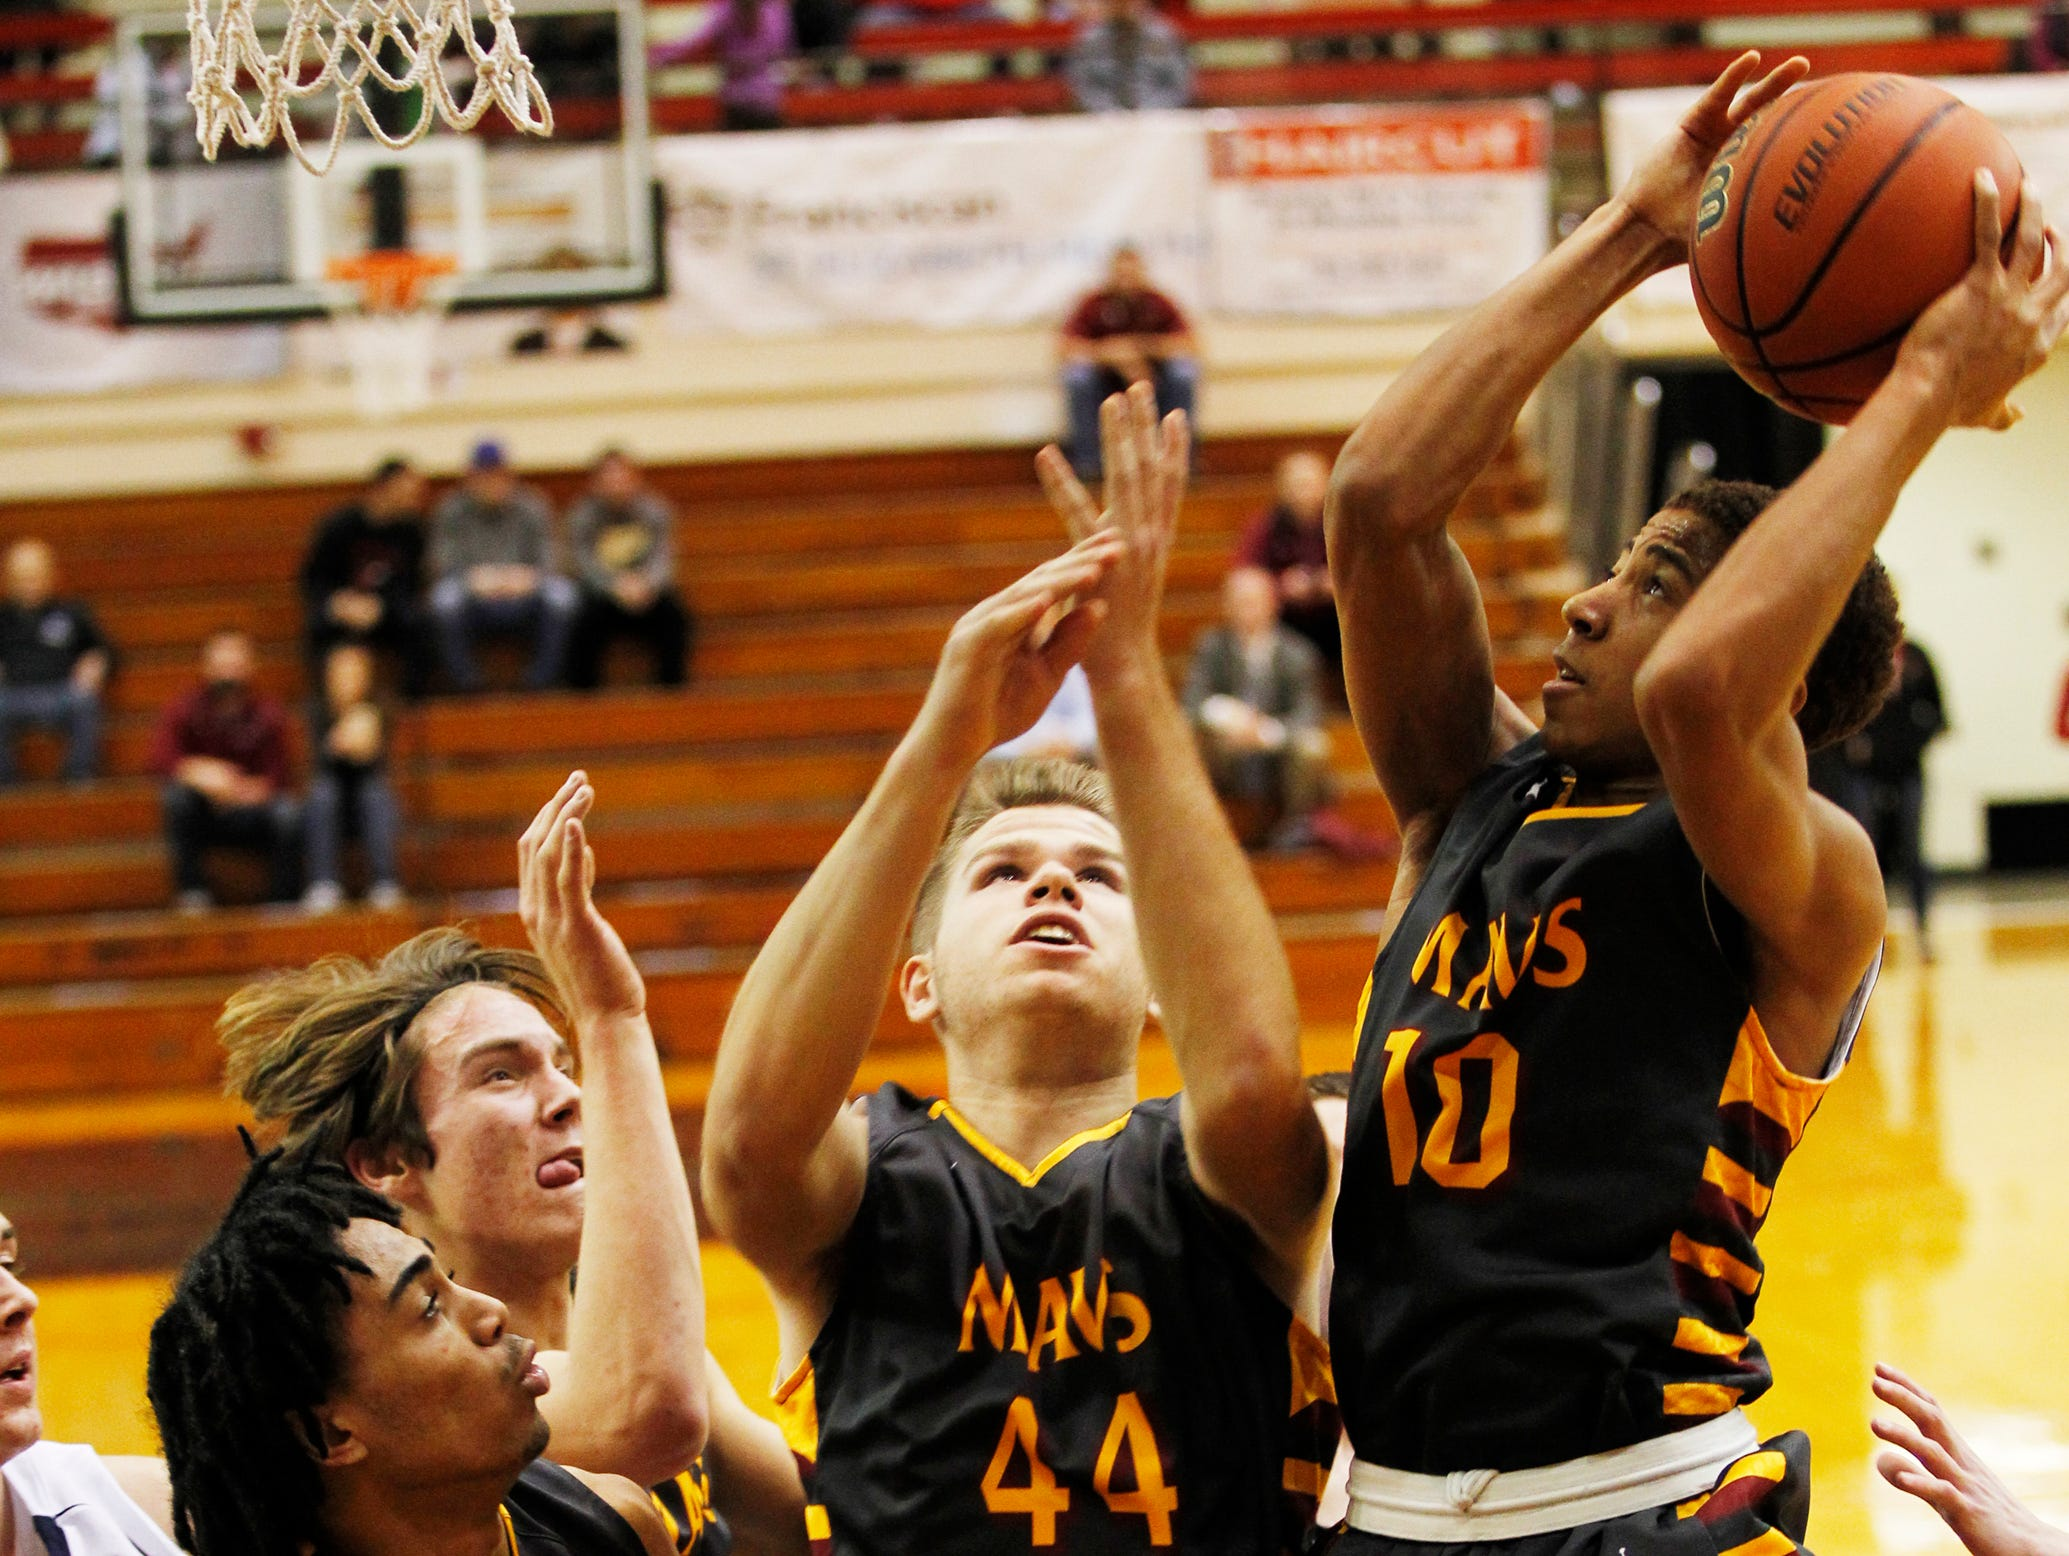 McCutcheon's Robert Phinisee pulls down a rebound in a crowd against Central Catholic in the J&C Hoops Classic Tuesday, December 1, 2015, at Lafayette Jeff. McCutcheon won in a landslide 114-44 over Central Catholic.